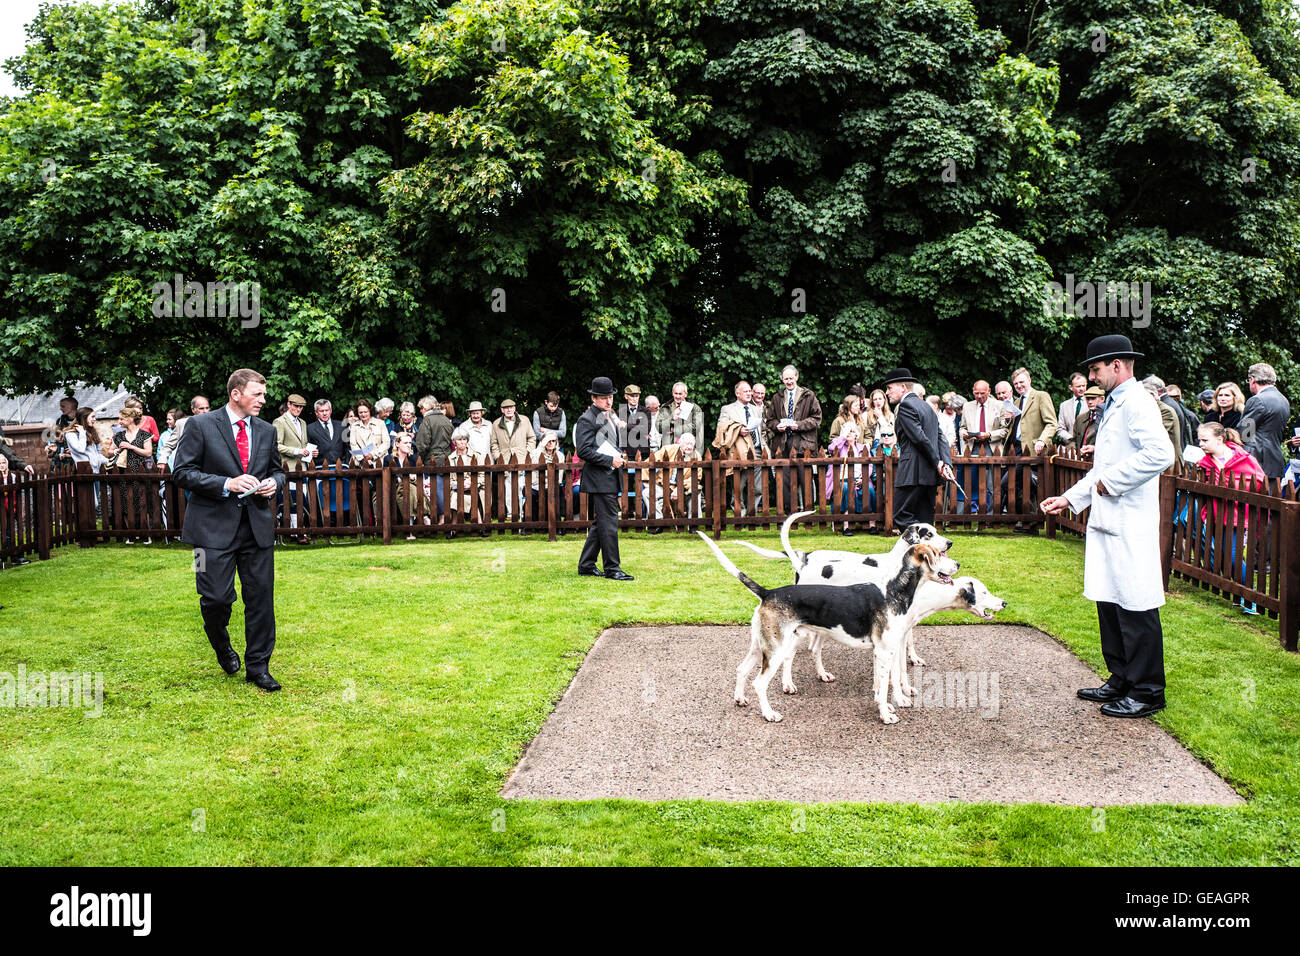 Greenwells, Bowden, St. Boswells, Scottish Borders, UK. 24th July 2016. The Duke of Buccleuch Hunt's young entry Stock Photo